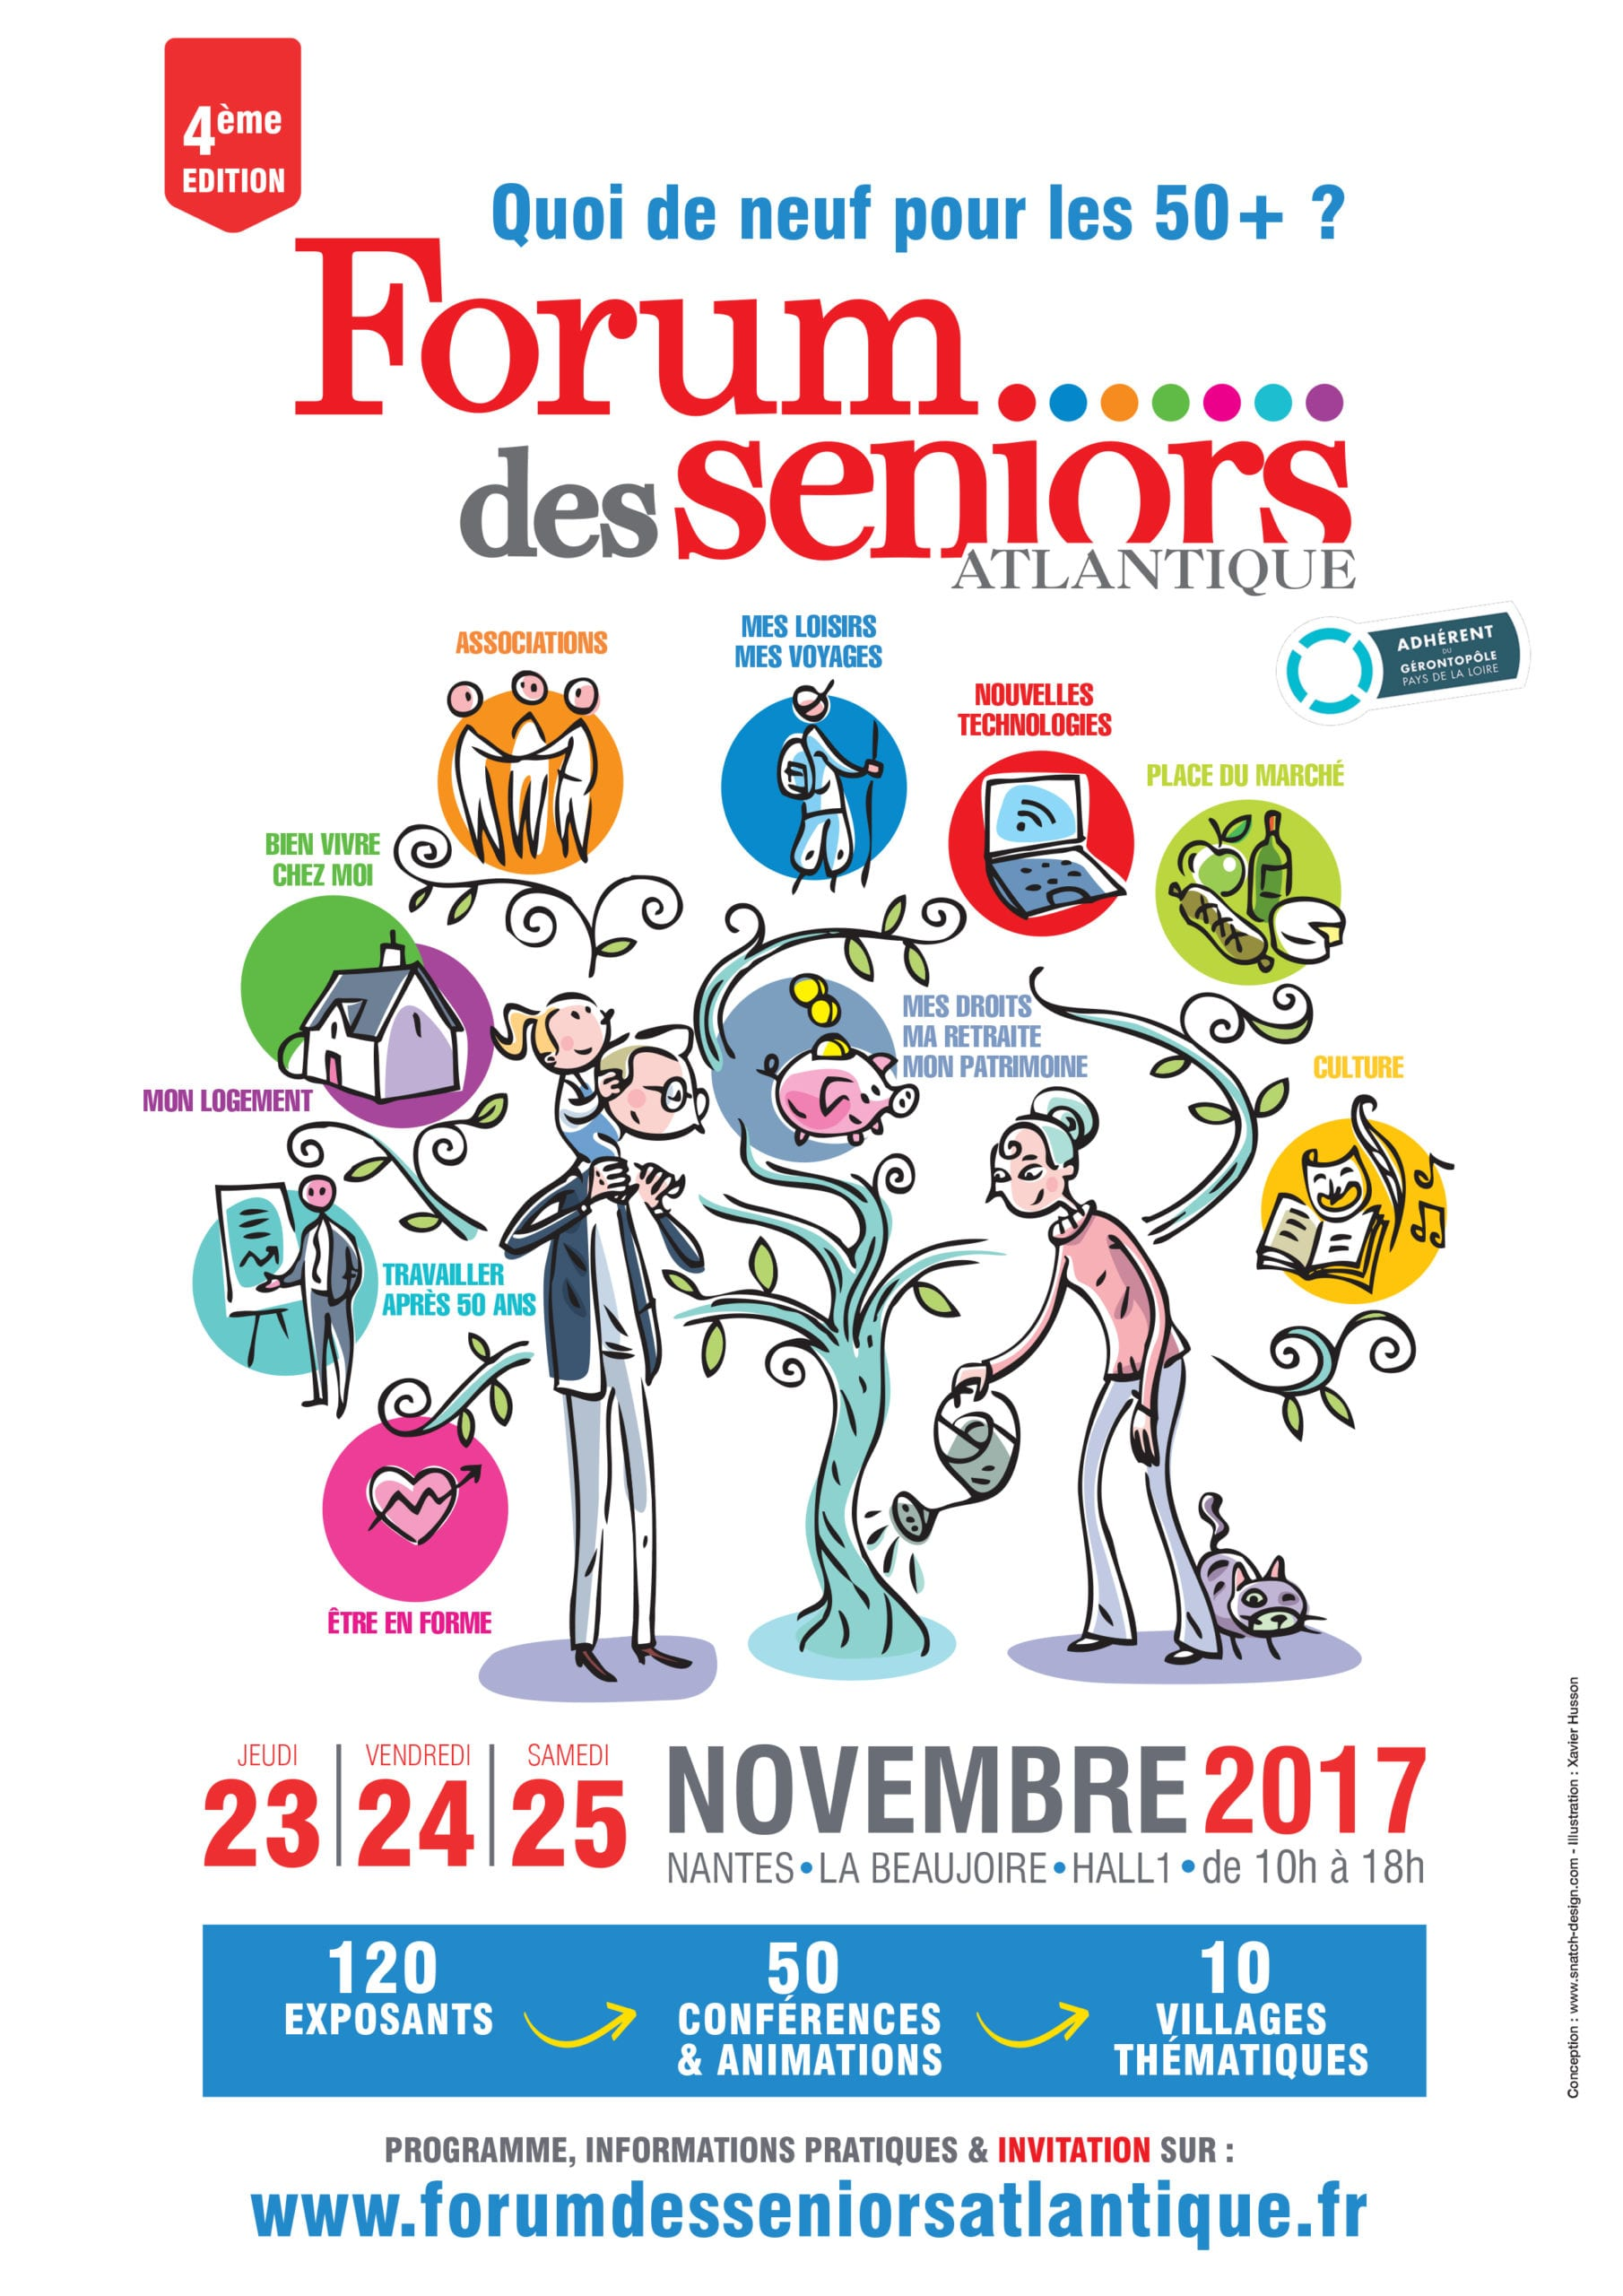 Logo du forum des seniors atlantique